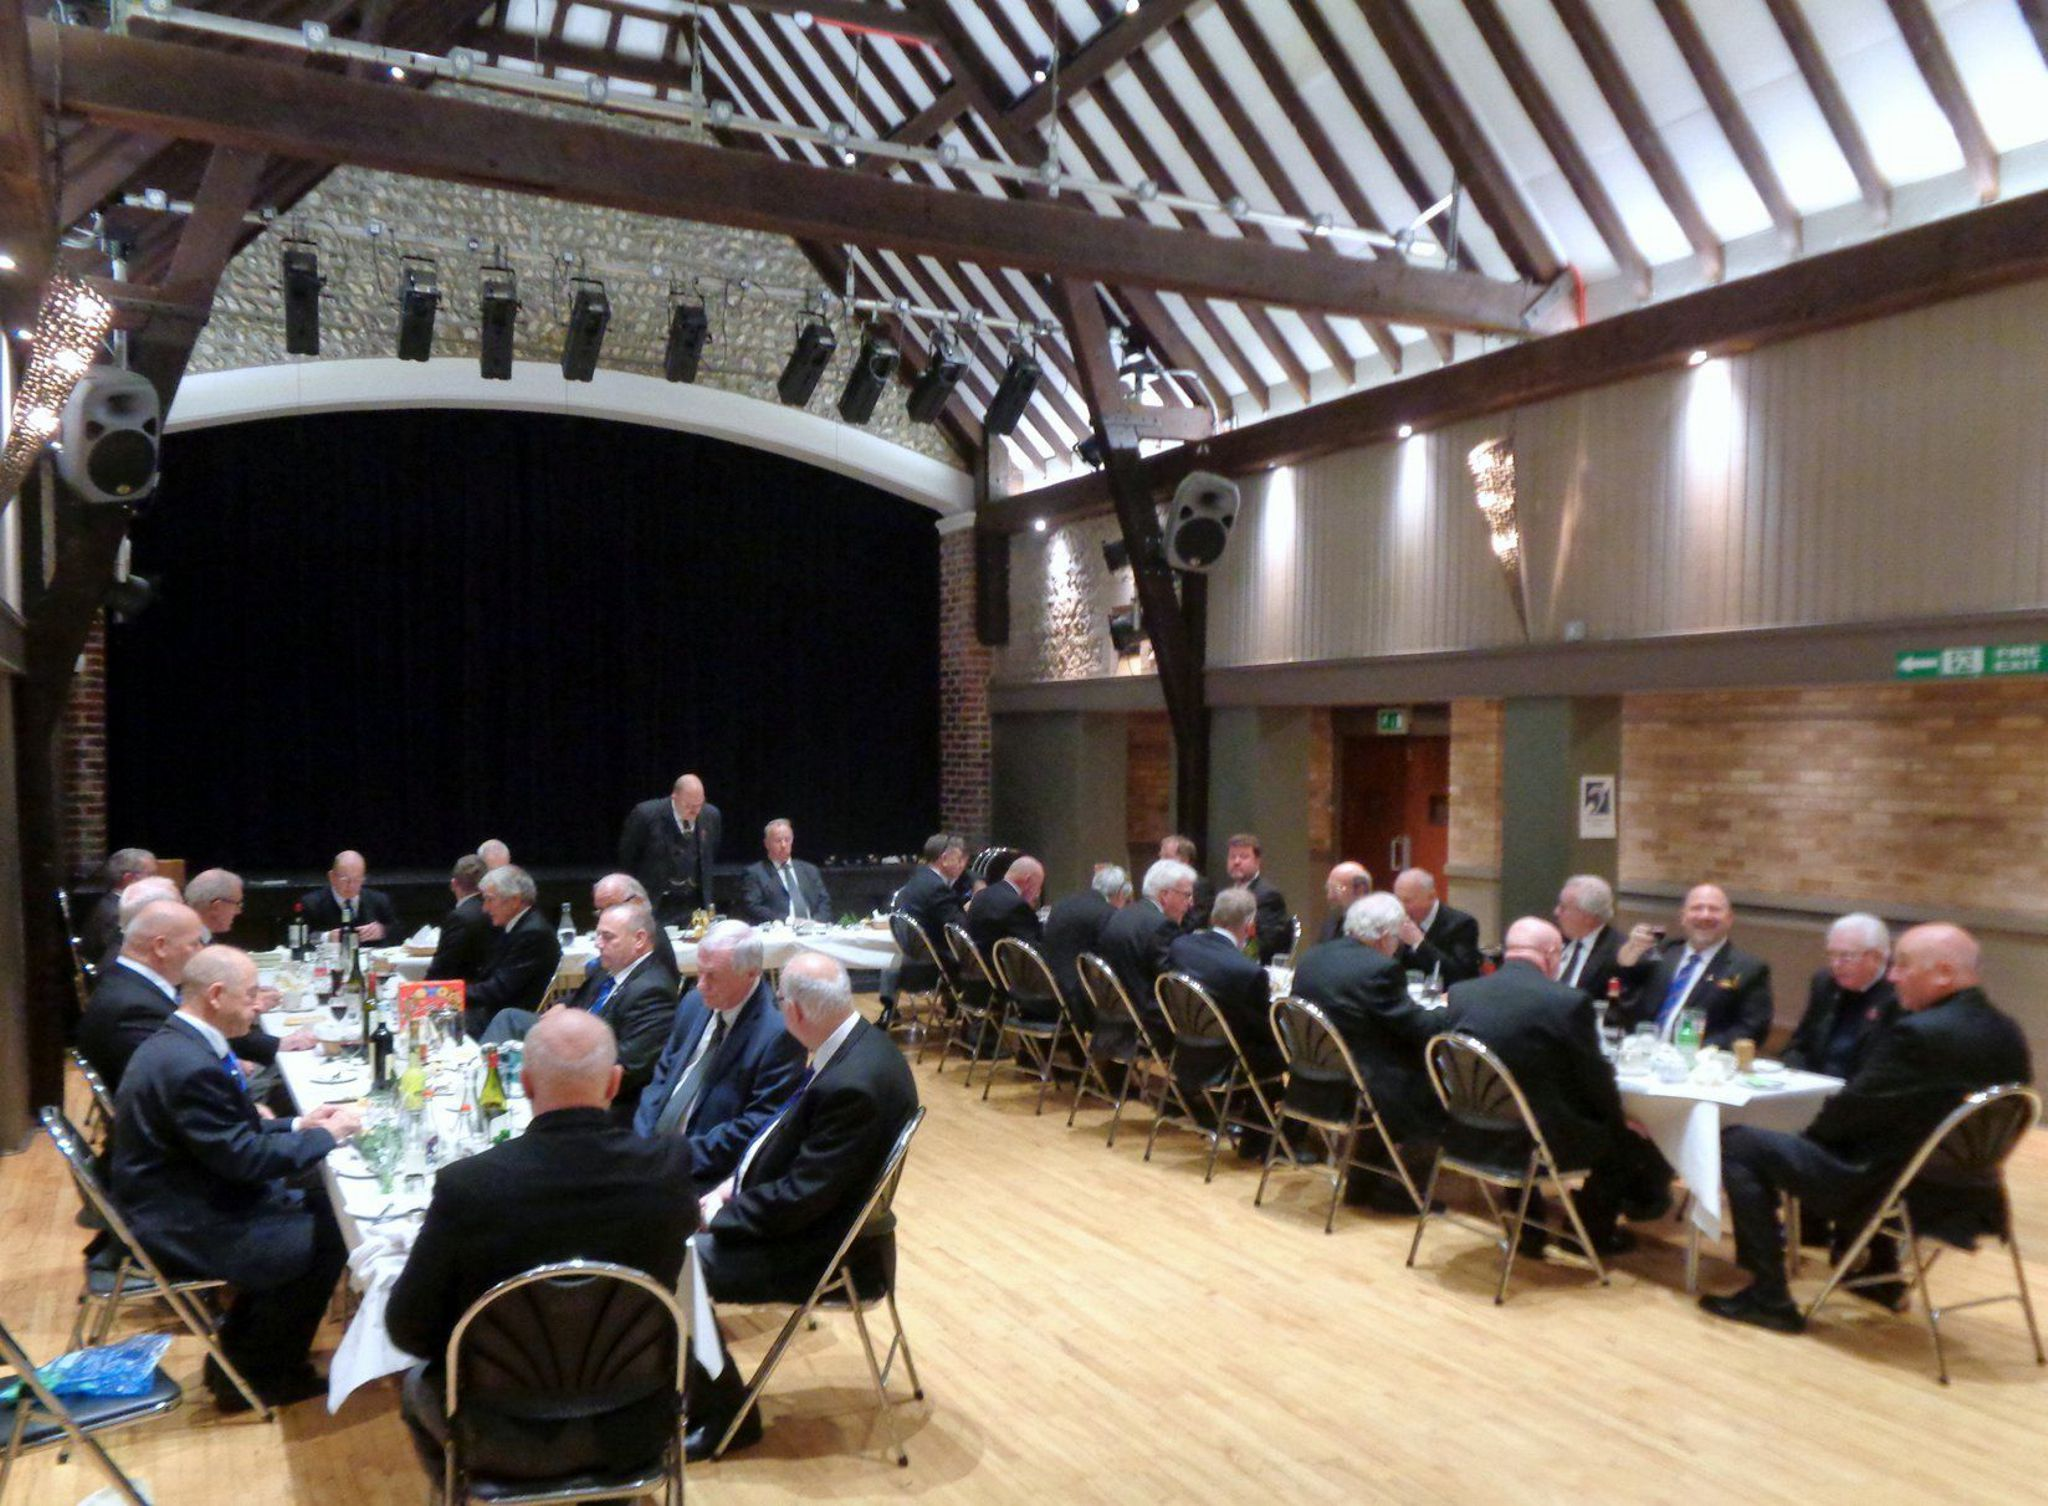 Southwick Masonic Lodge | Southwick W Sussex